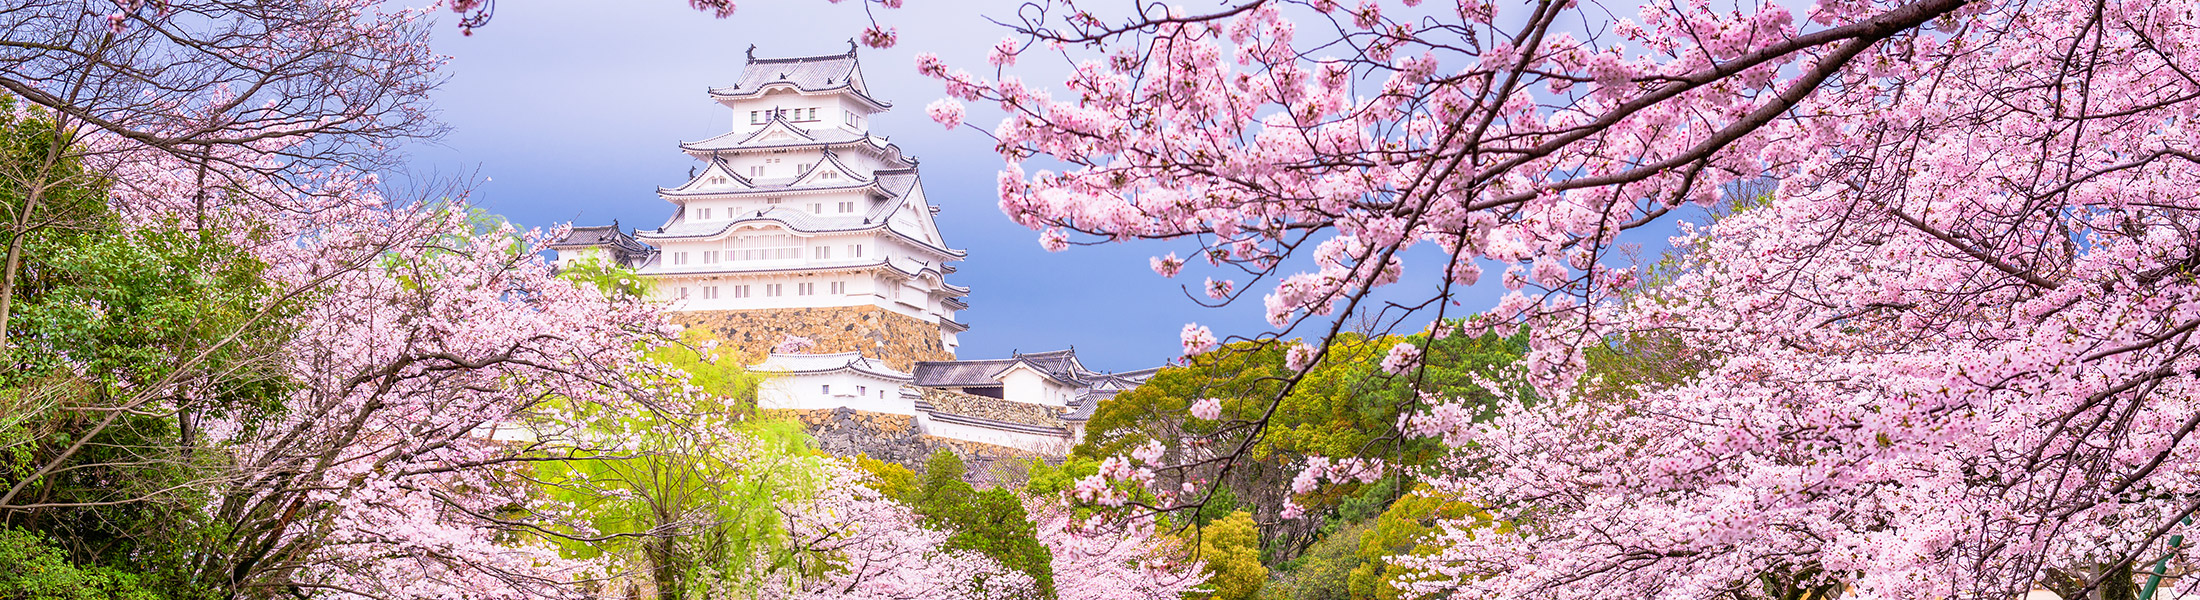 Himeji Castle in Japan viewed through cherry blossoms